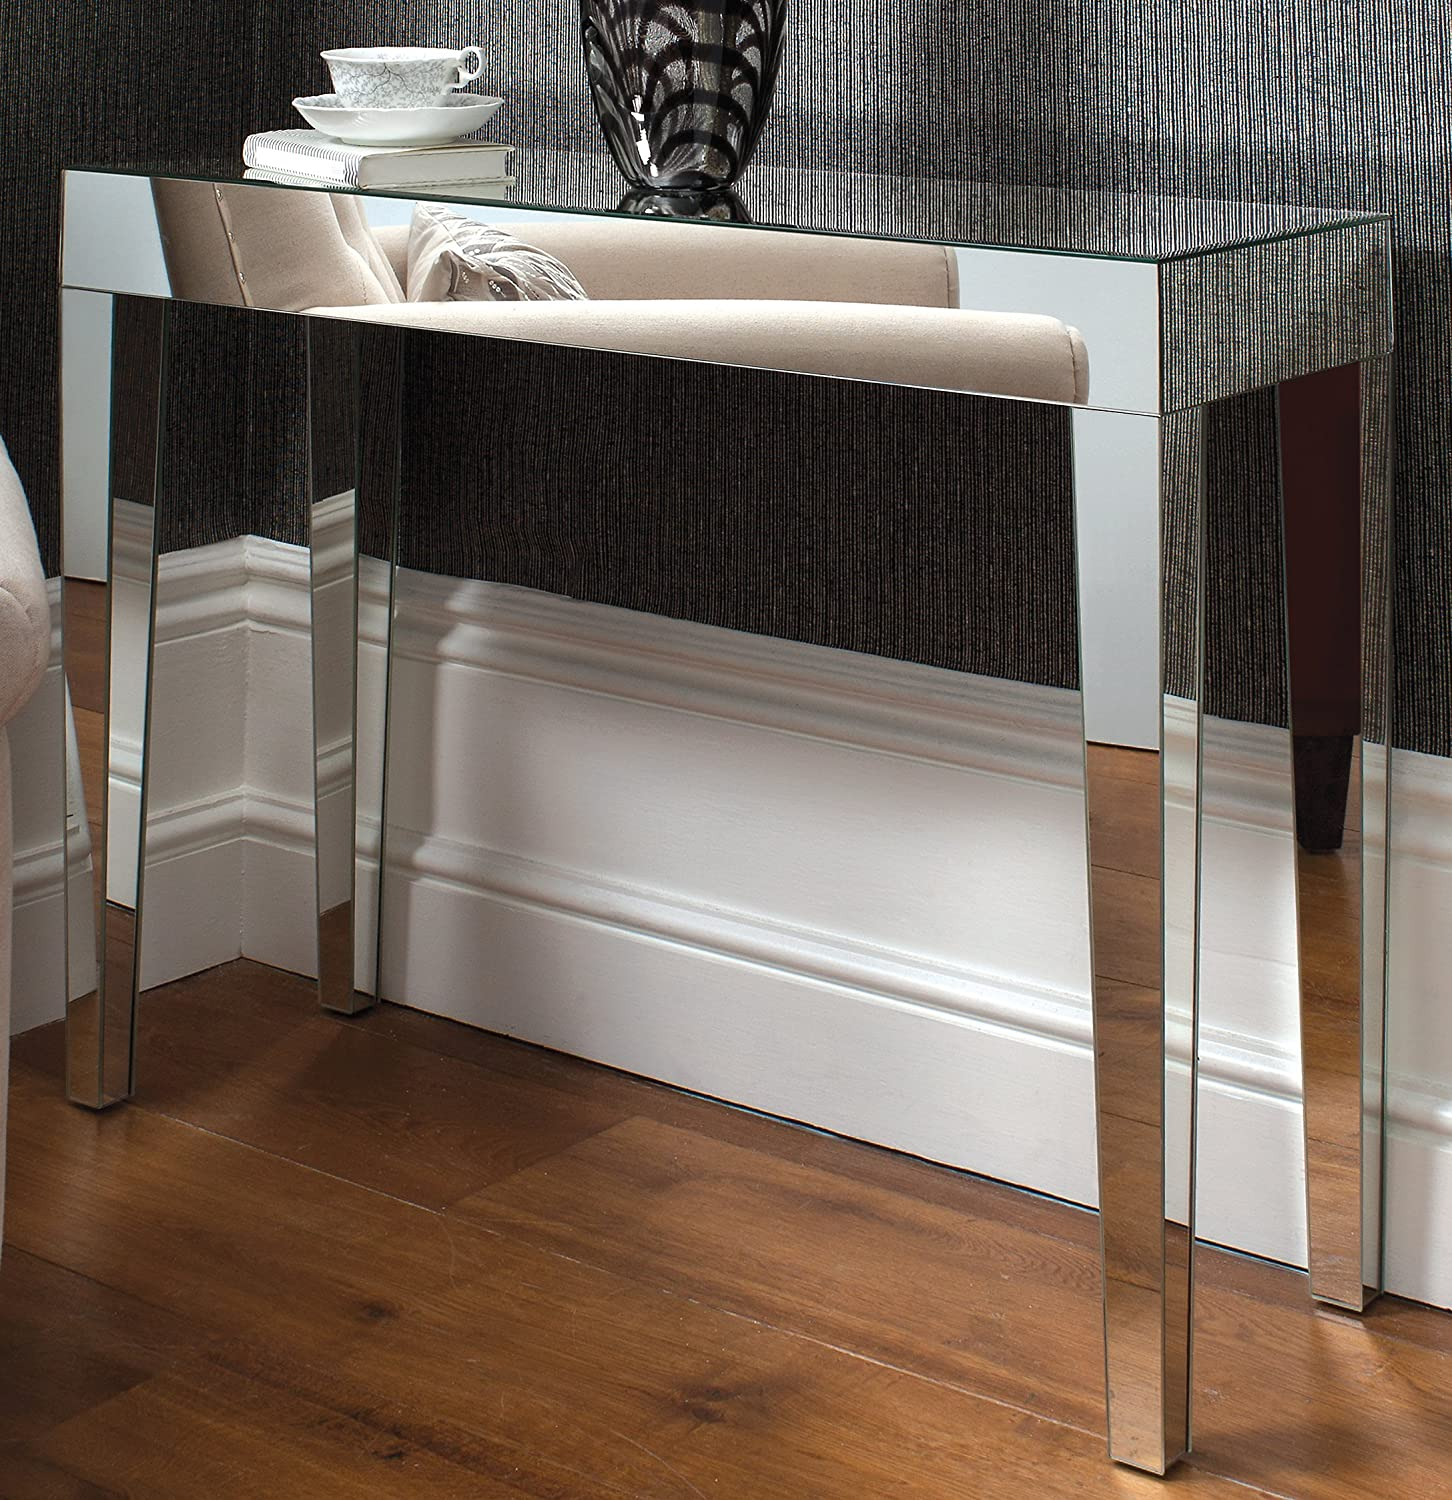 mirror hall table. Modern Glam VENETIAN Glass Geo Console Hall Table Mirrored Furniture 102 X 76cm: Amazon.co.uk: Kitchen \u0026 Home Mirror Y